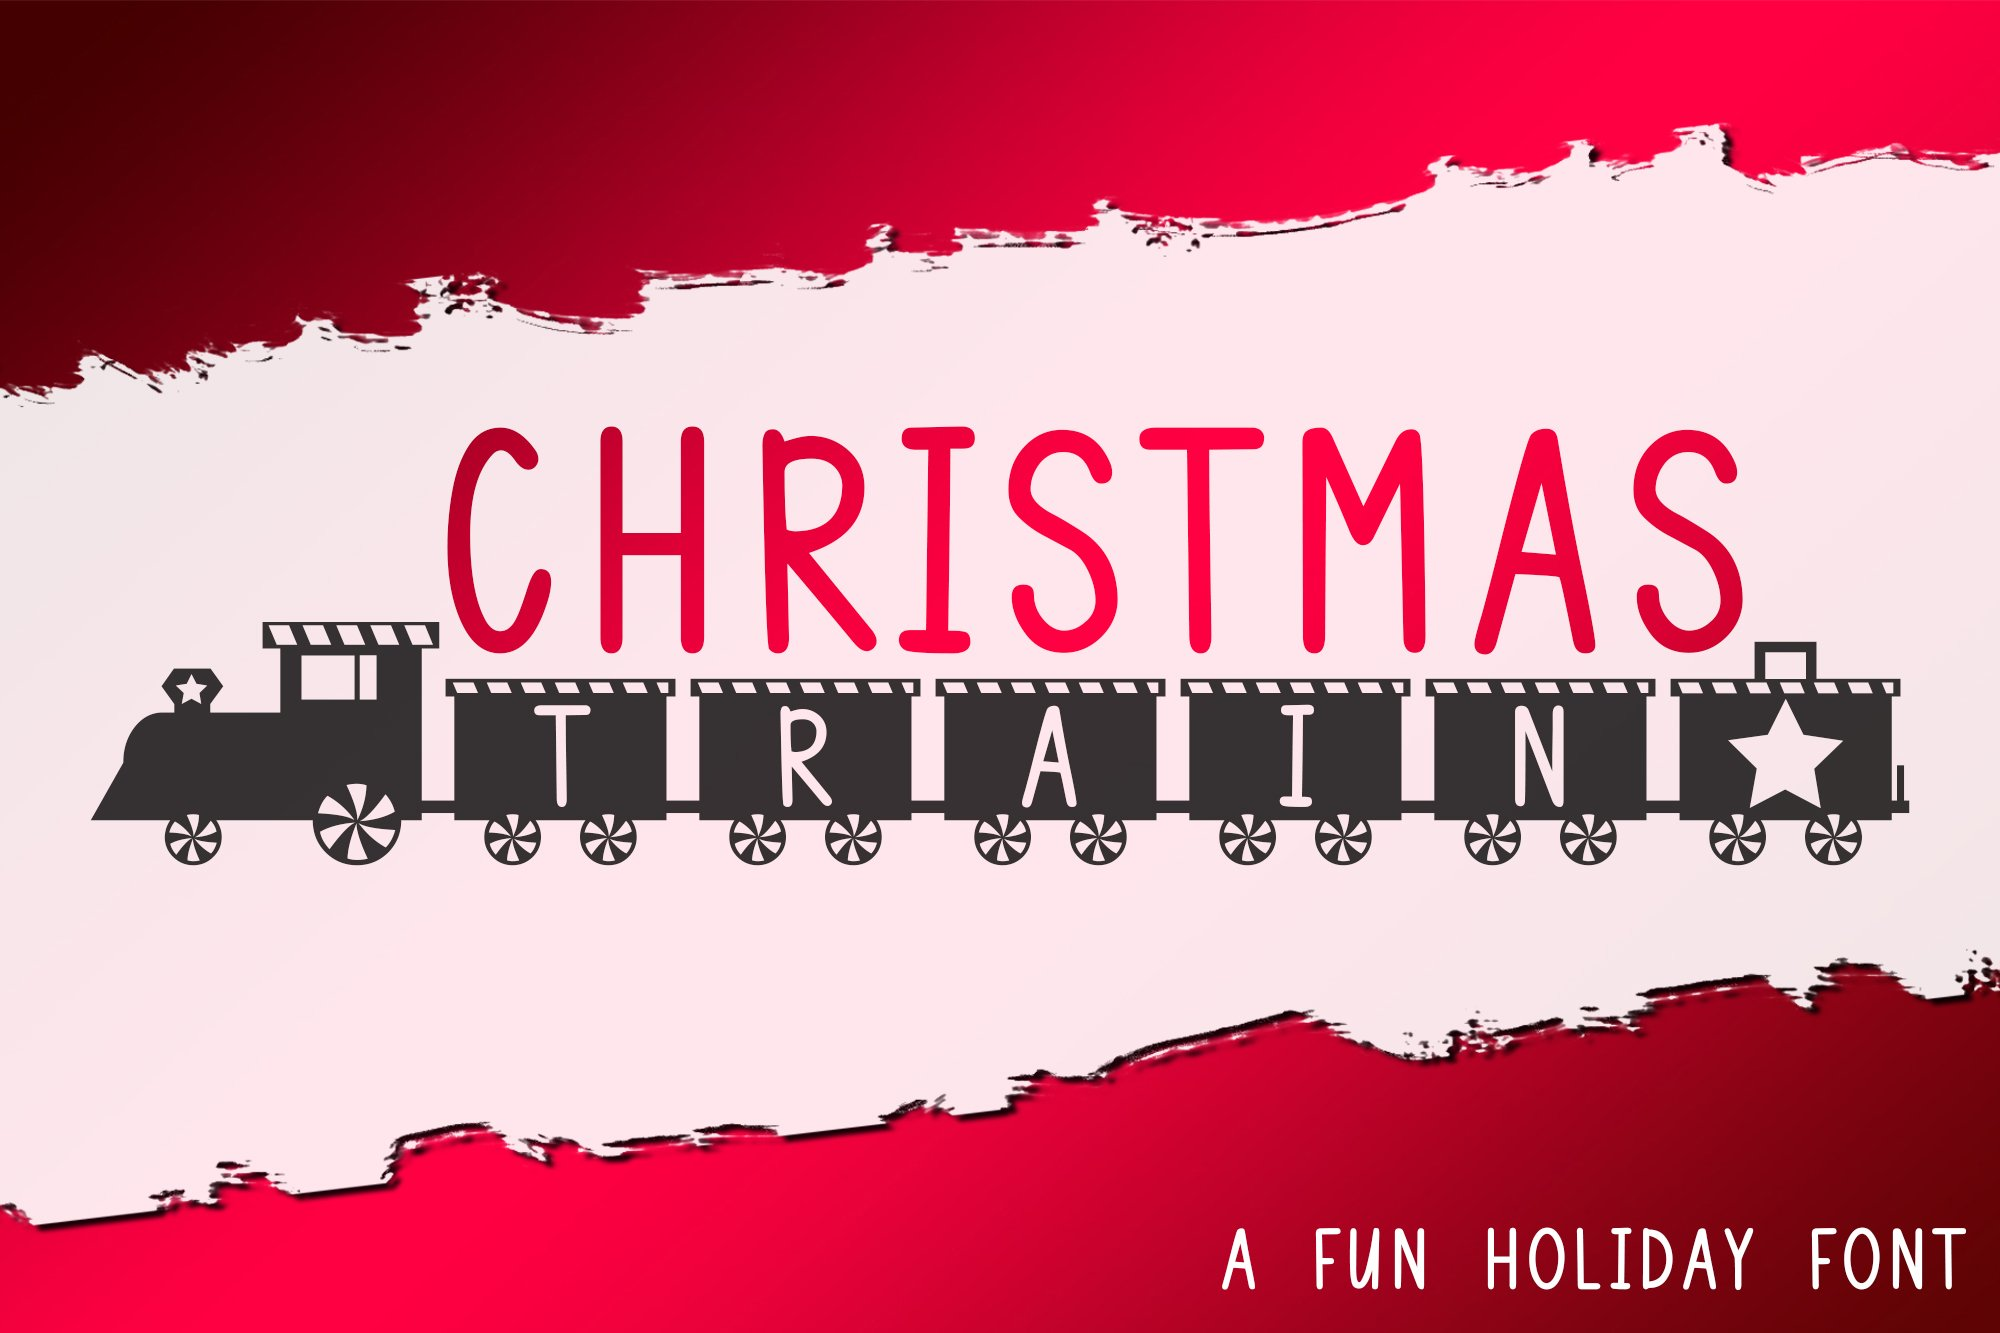 Christmas Train - A Fun Holiday Font example image 1